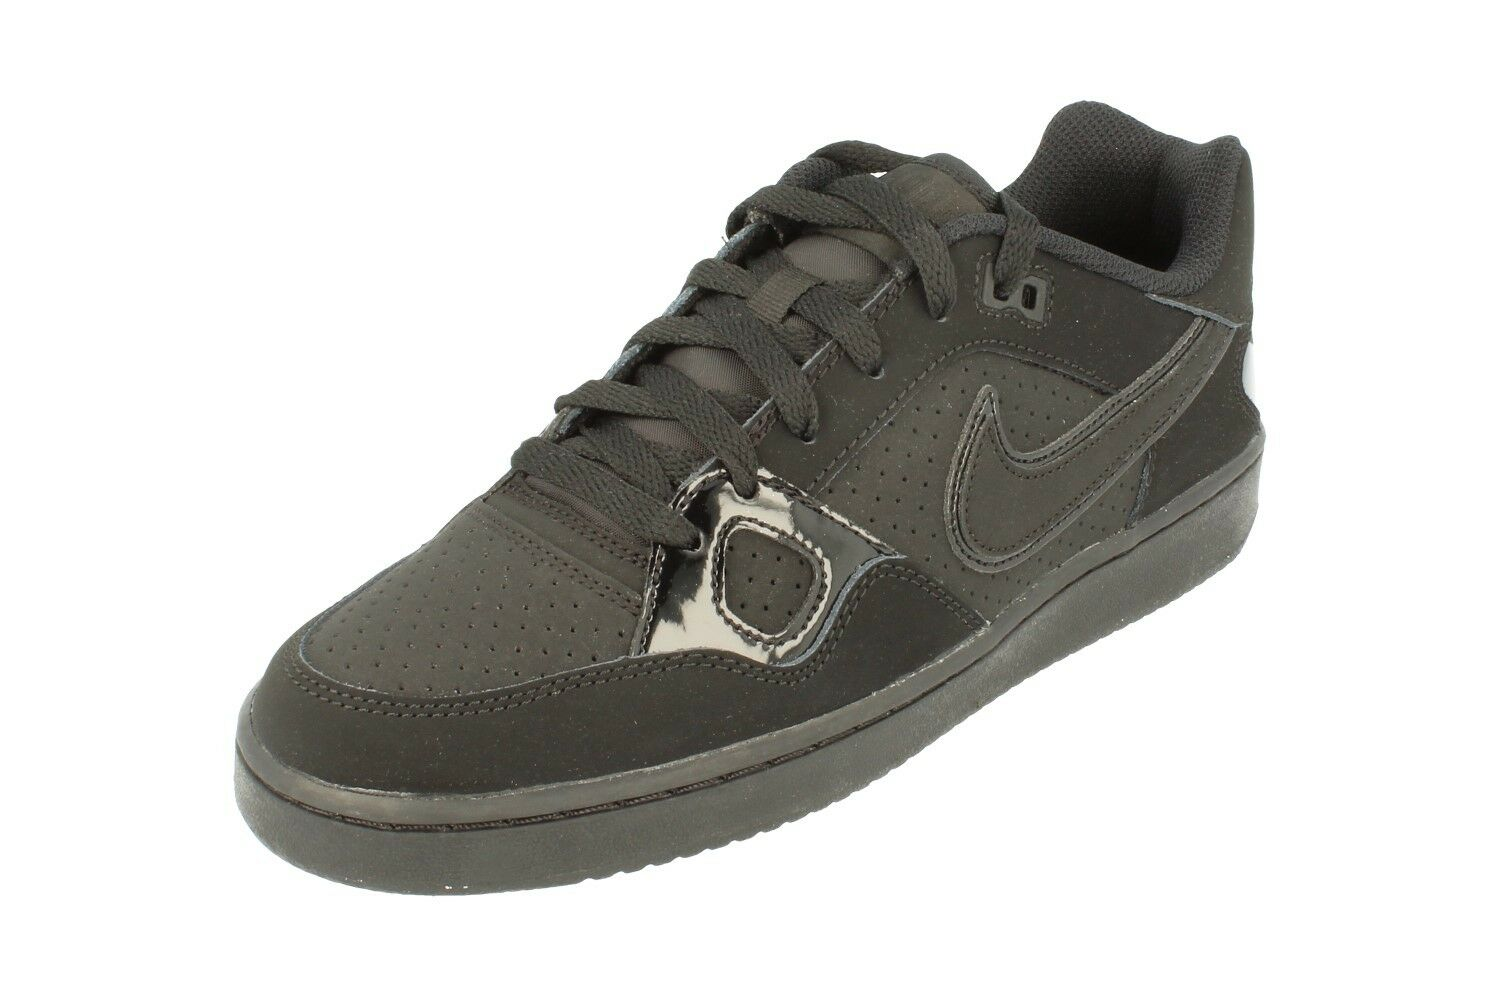 Nike Son Of Obliger Obliger Of Baskets Hommes 616775 Baskets 005 e57652